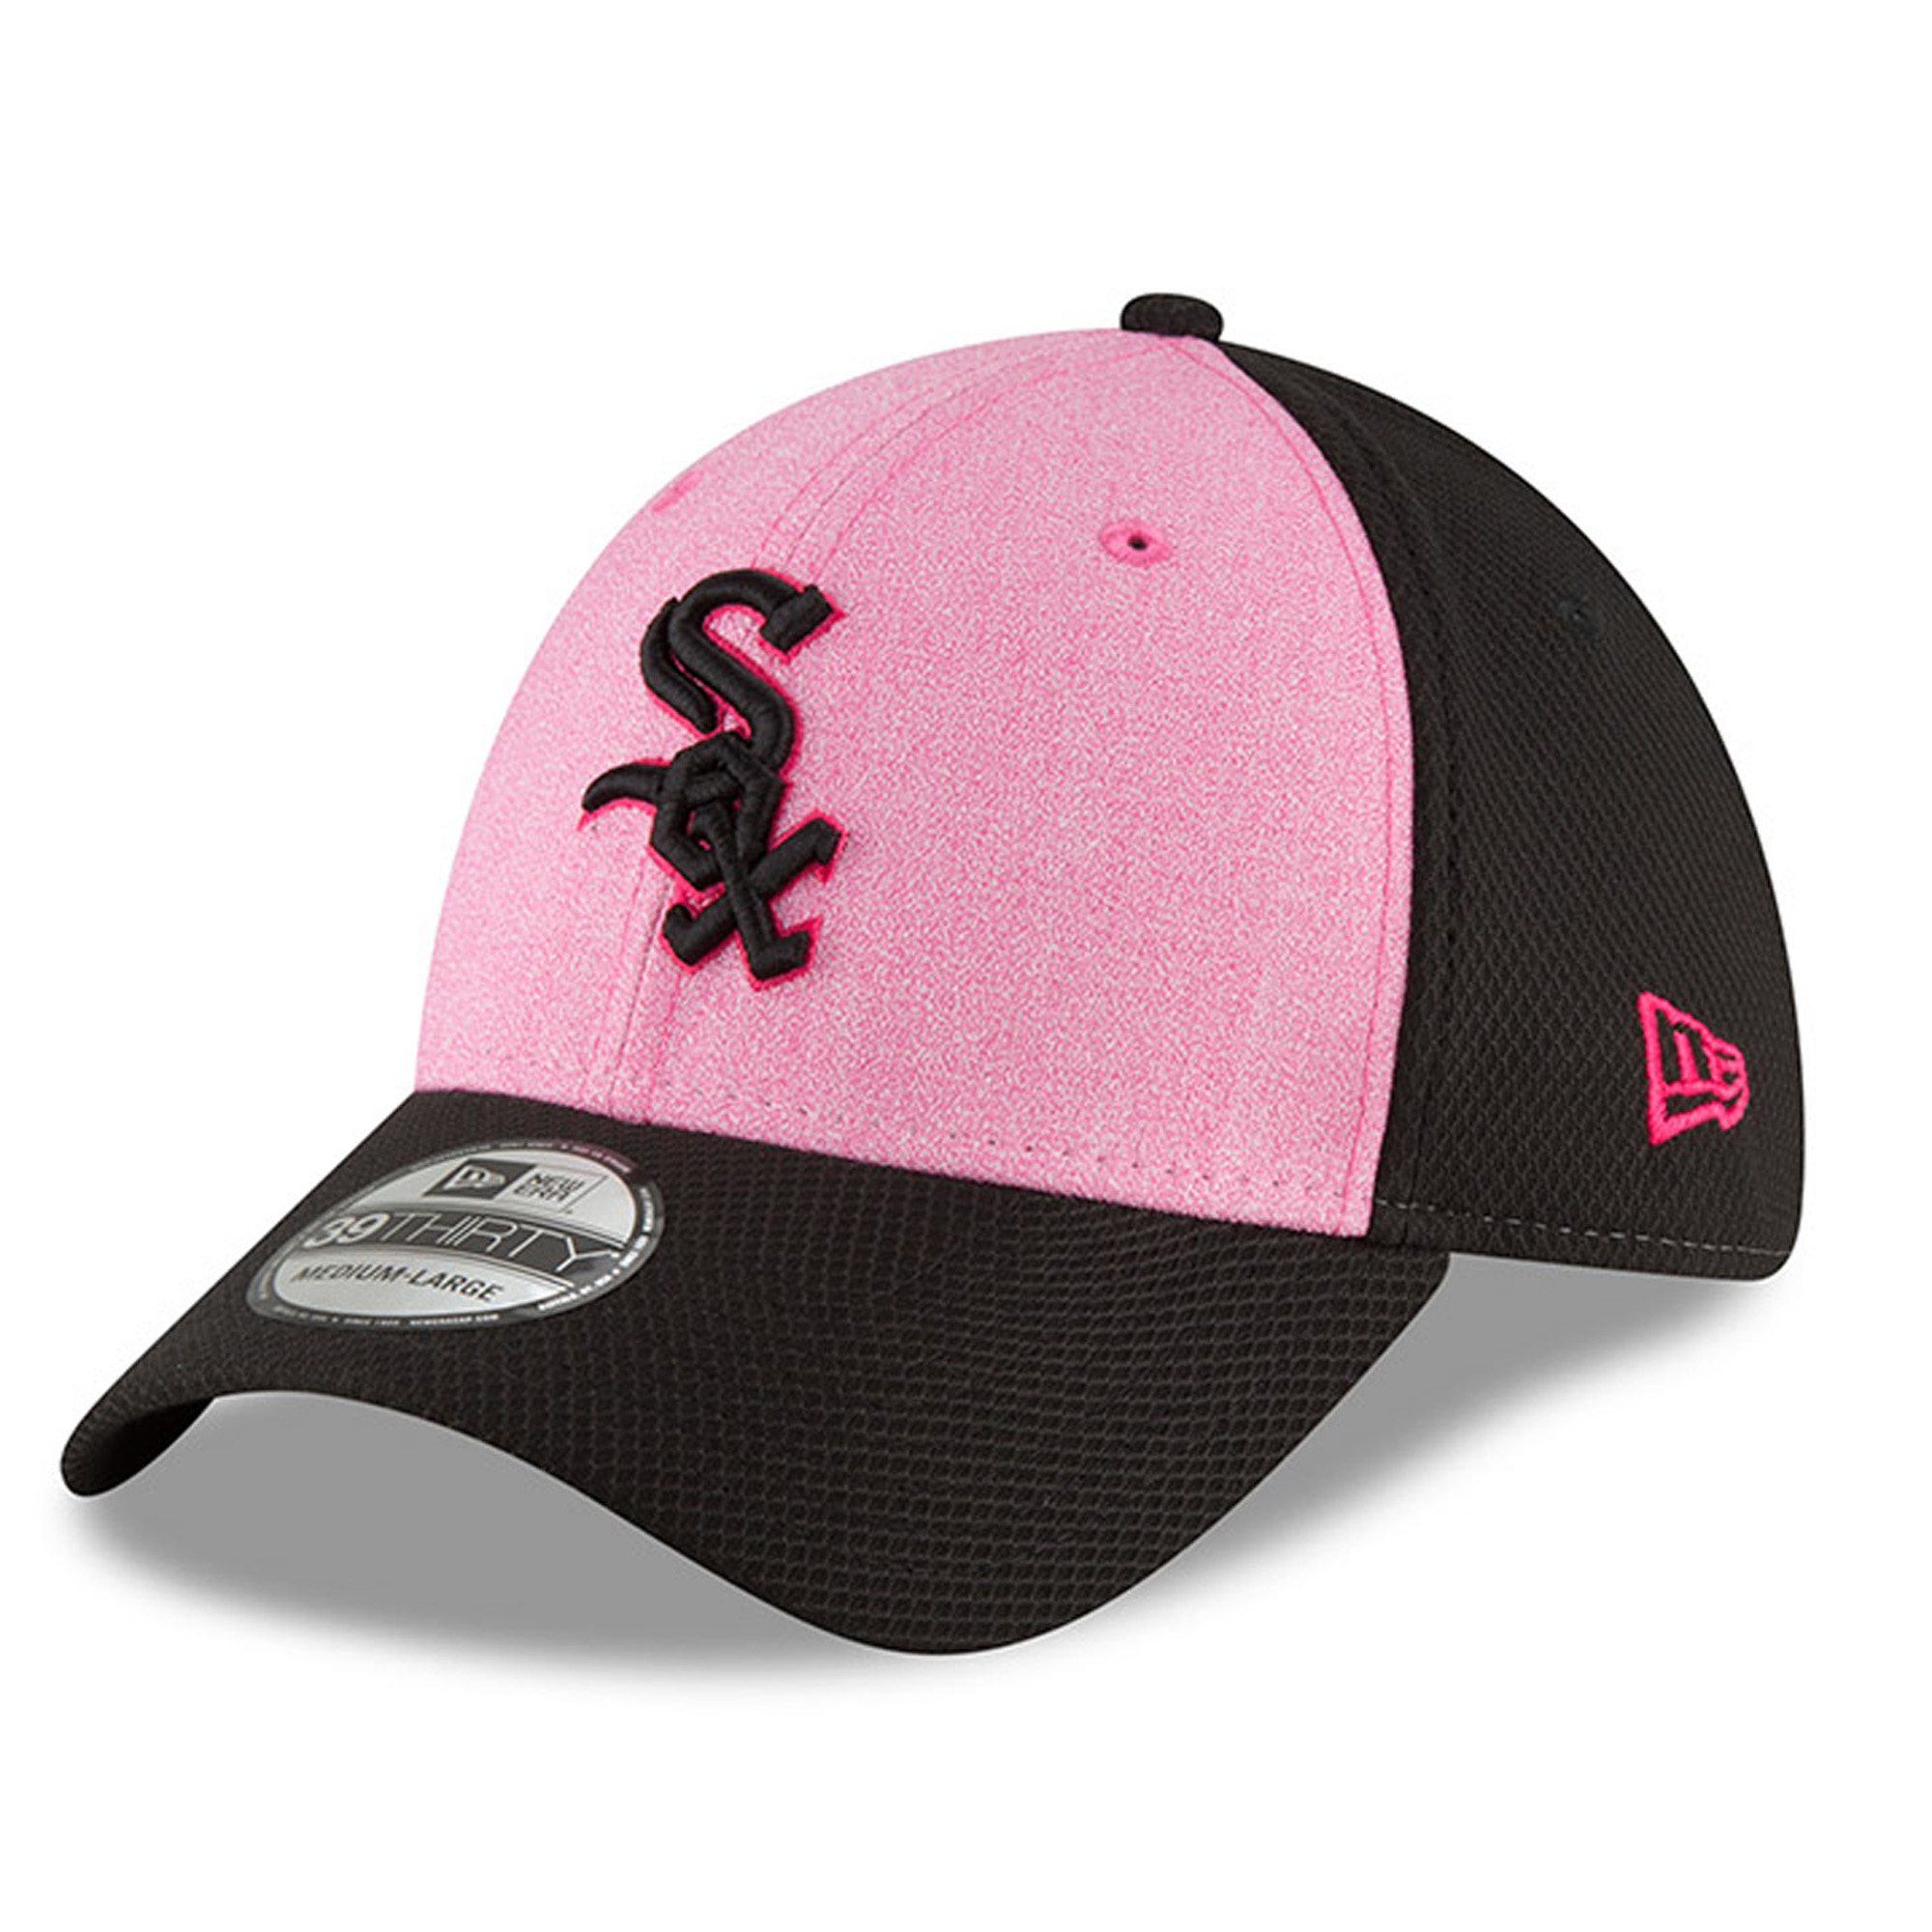 Chicago White Sox New Era 2018 Mother's Day 39THIRTY Flex Hat - Pink